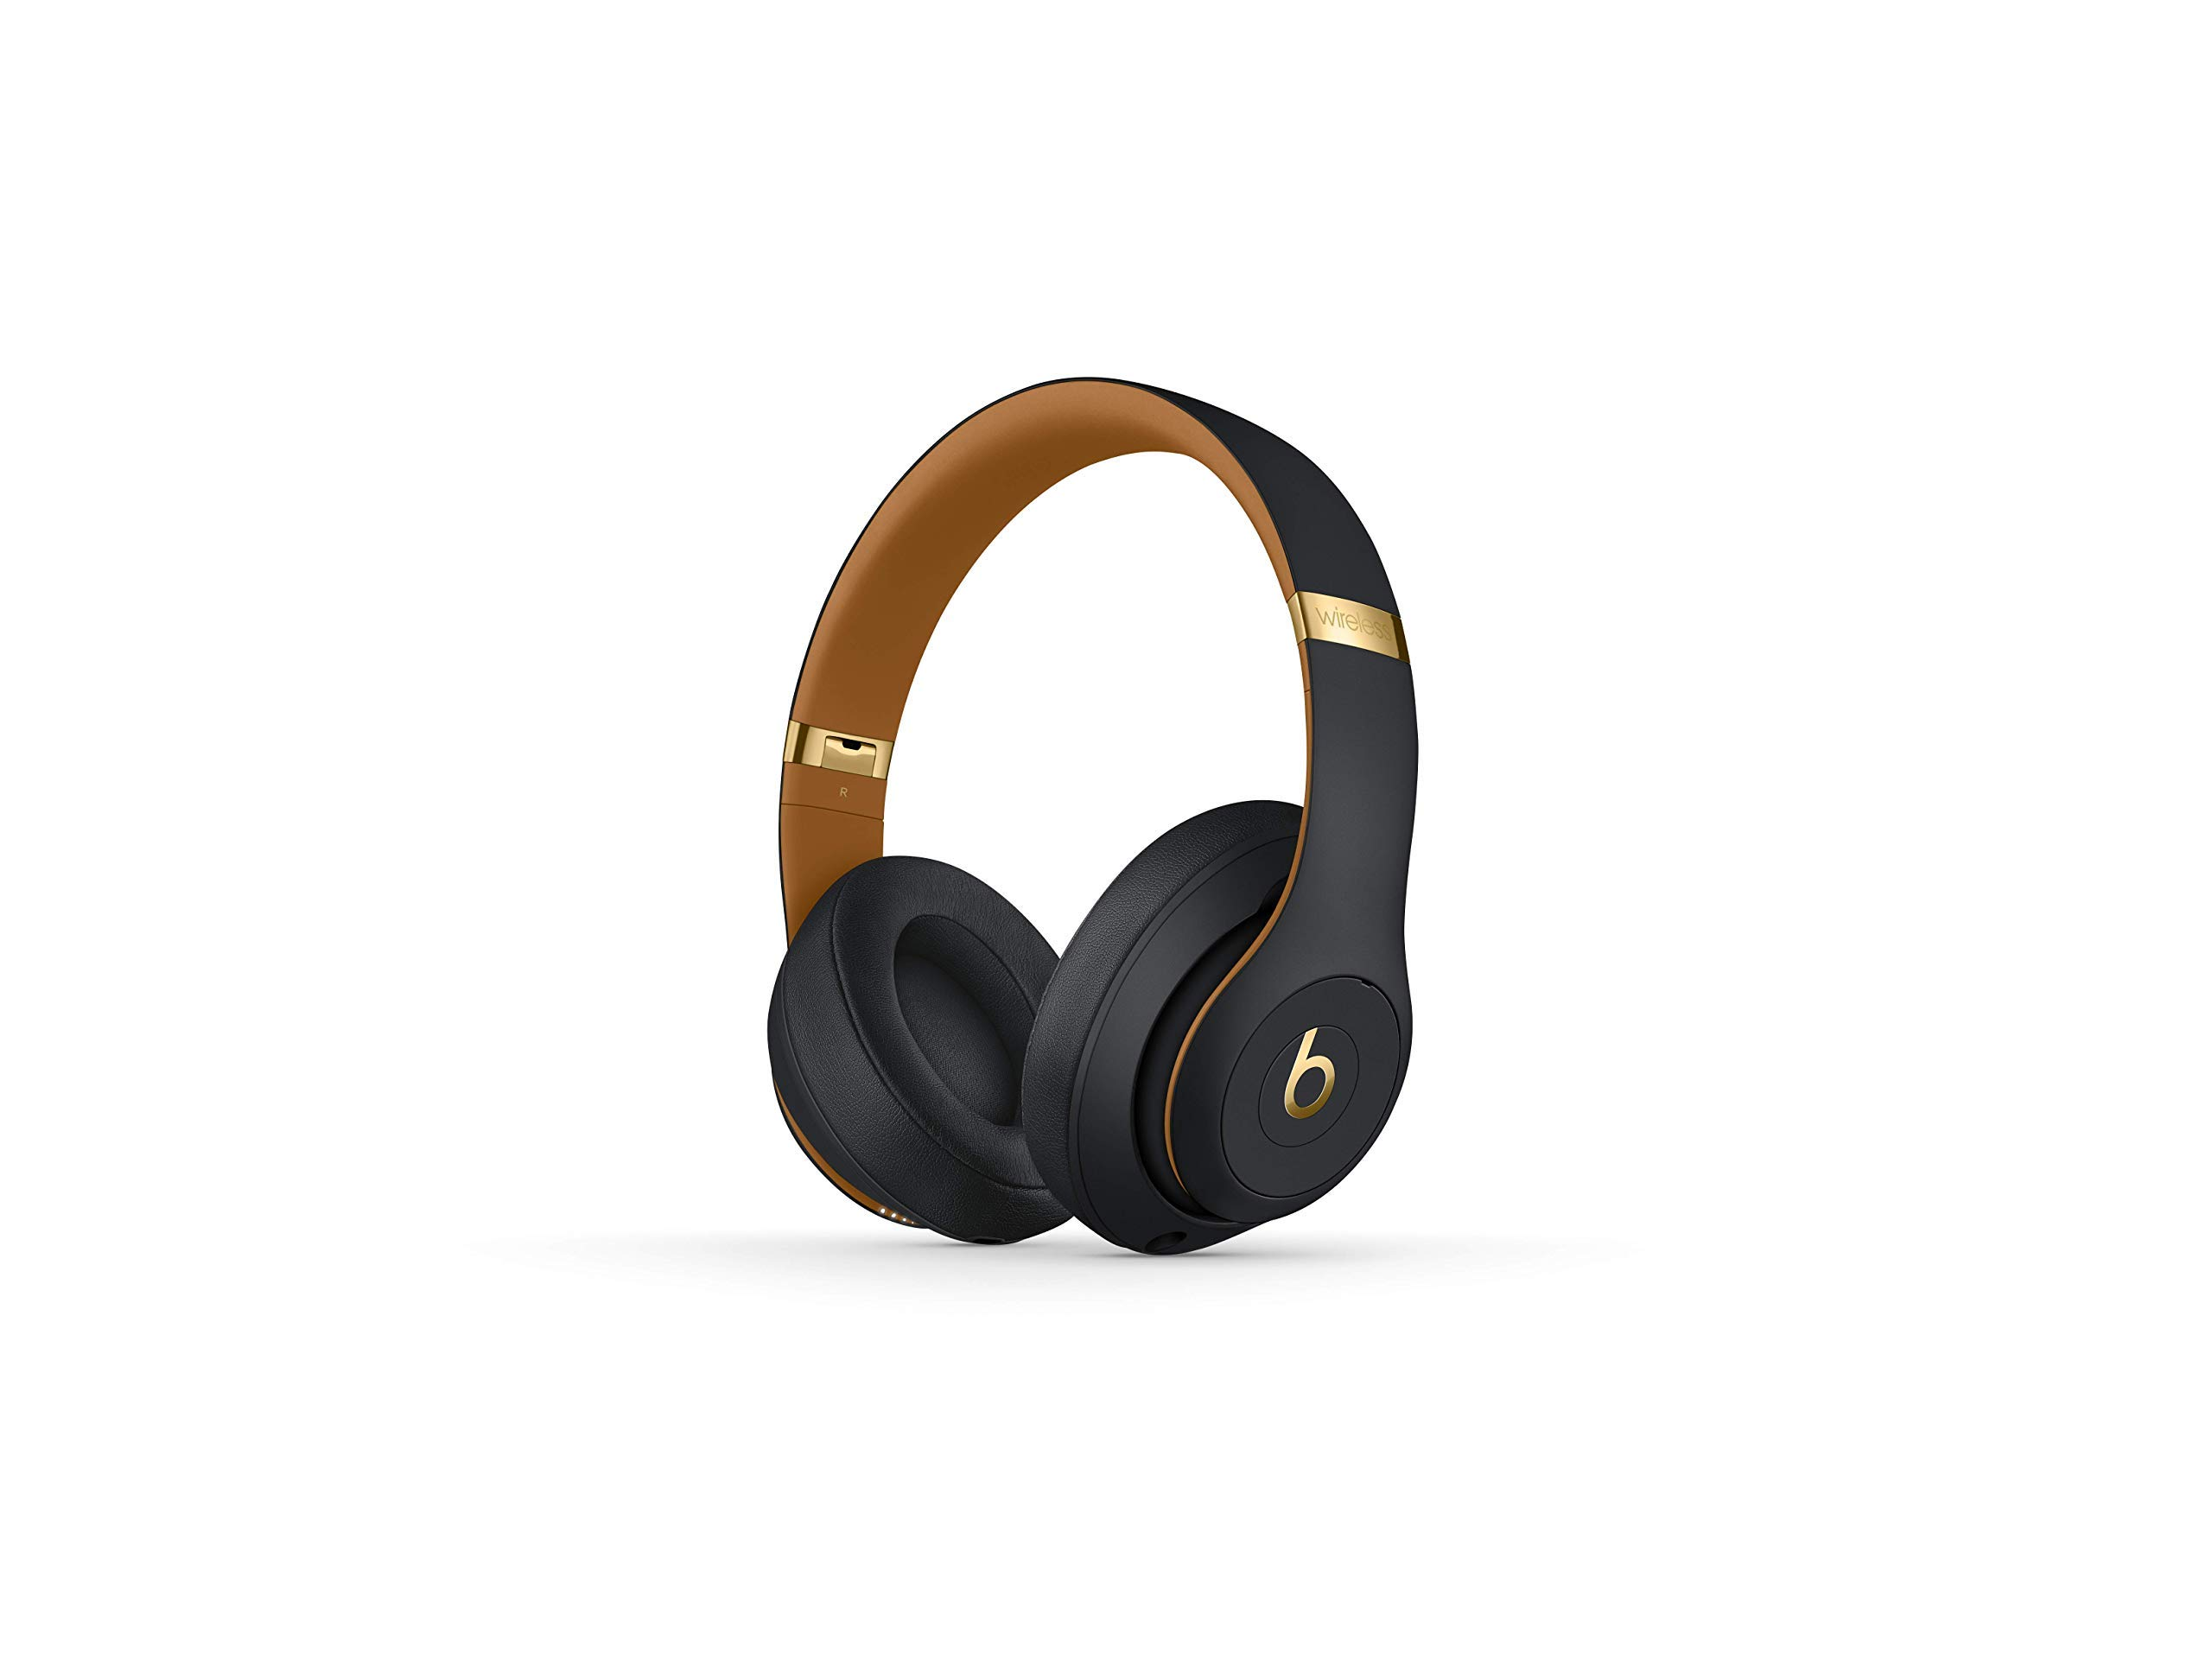 Beats Studio3 Wireless Over-Ear Headphones - The Beats Skyline Collection - Midnight Black (Renewed)